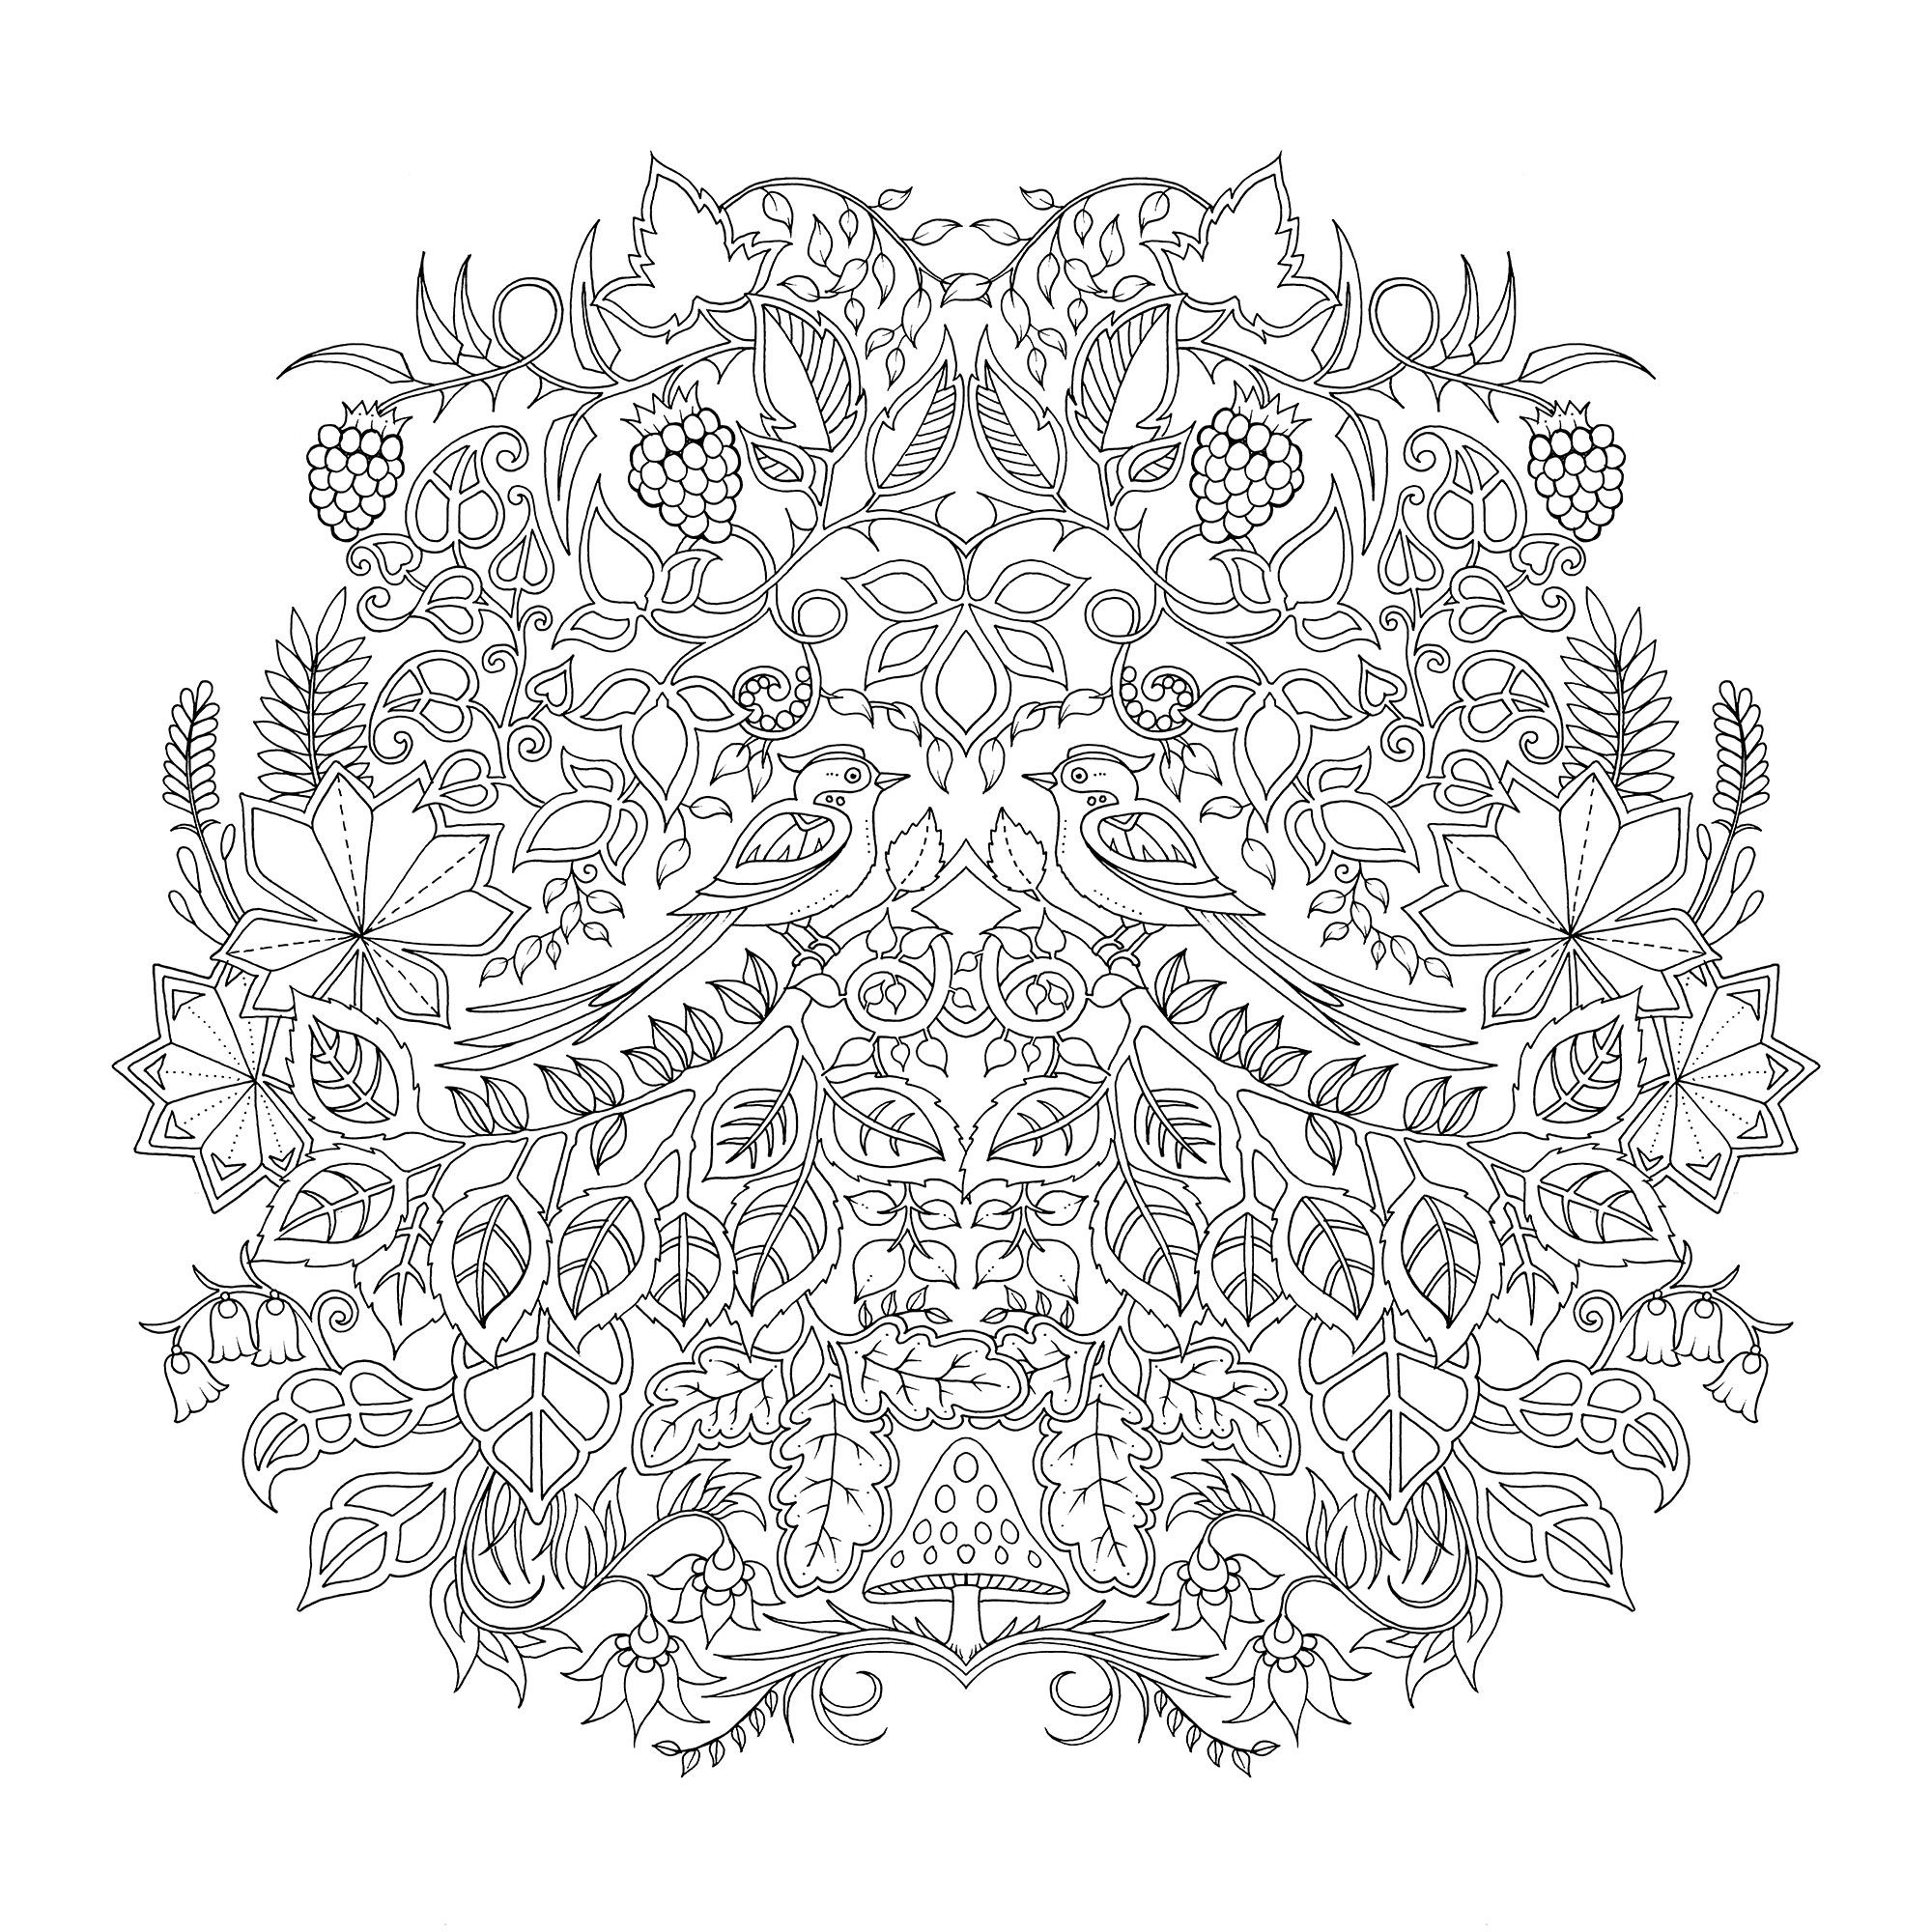 johanna coloring pages - photo#12